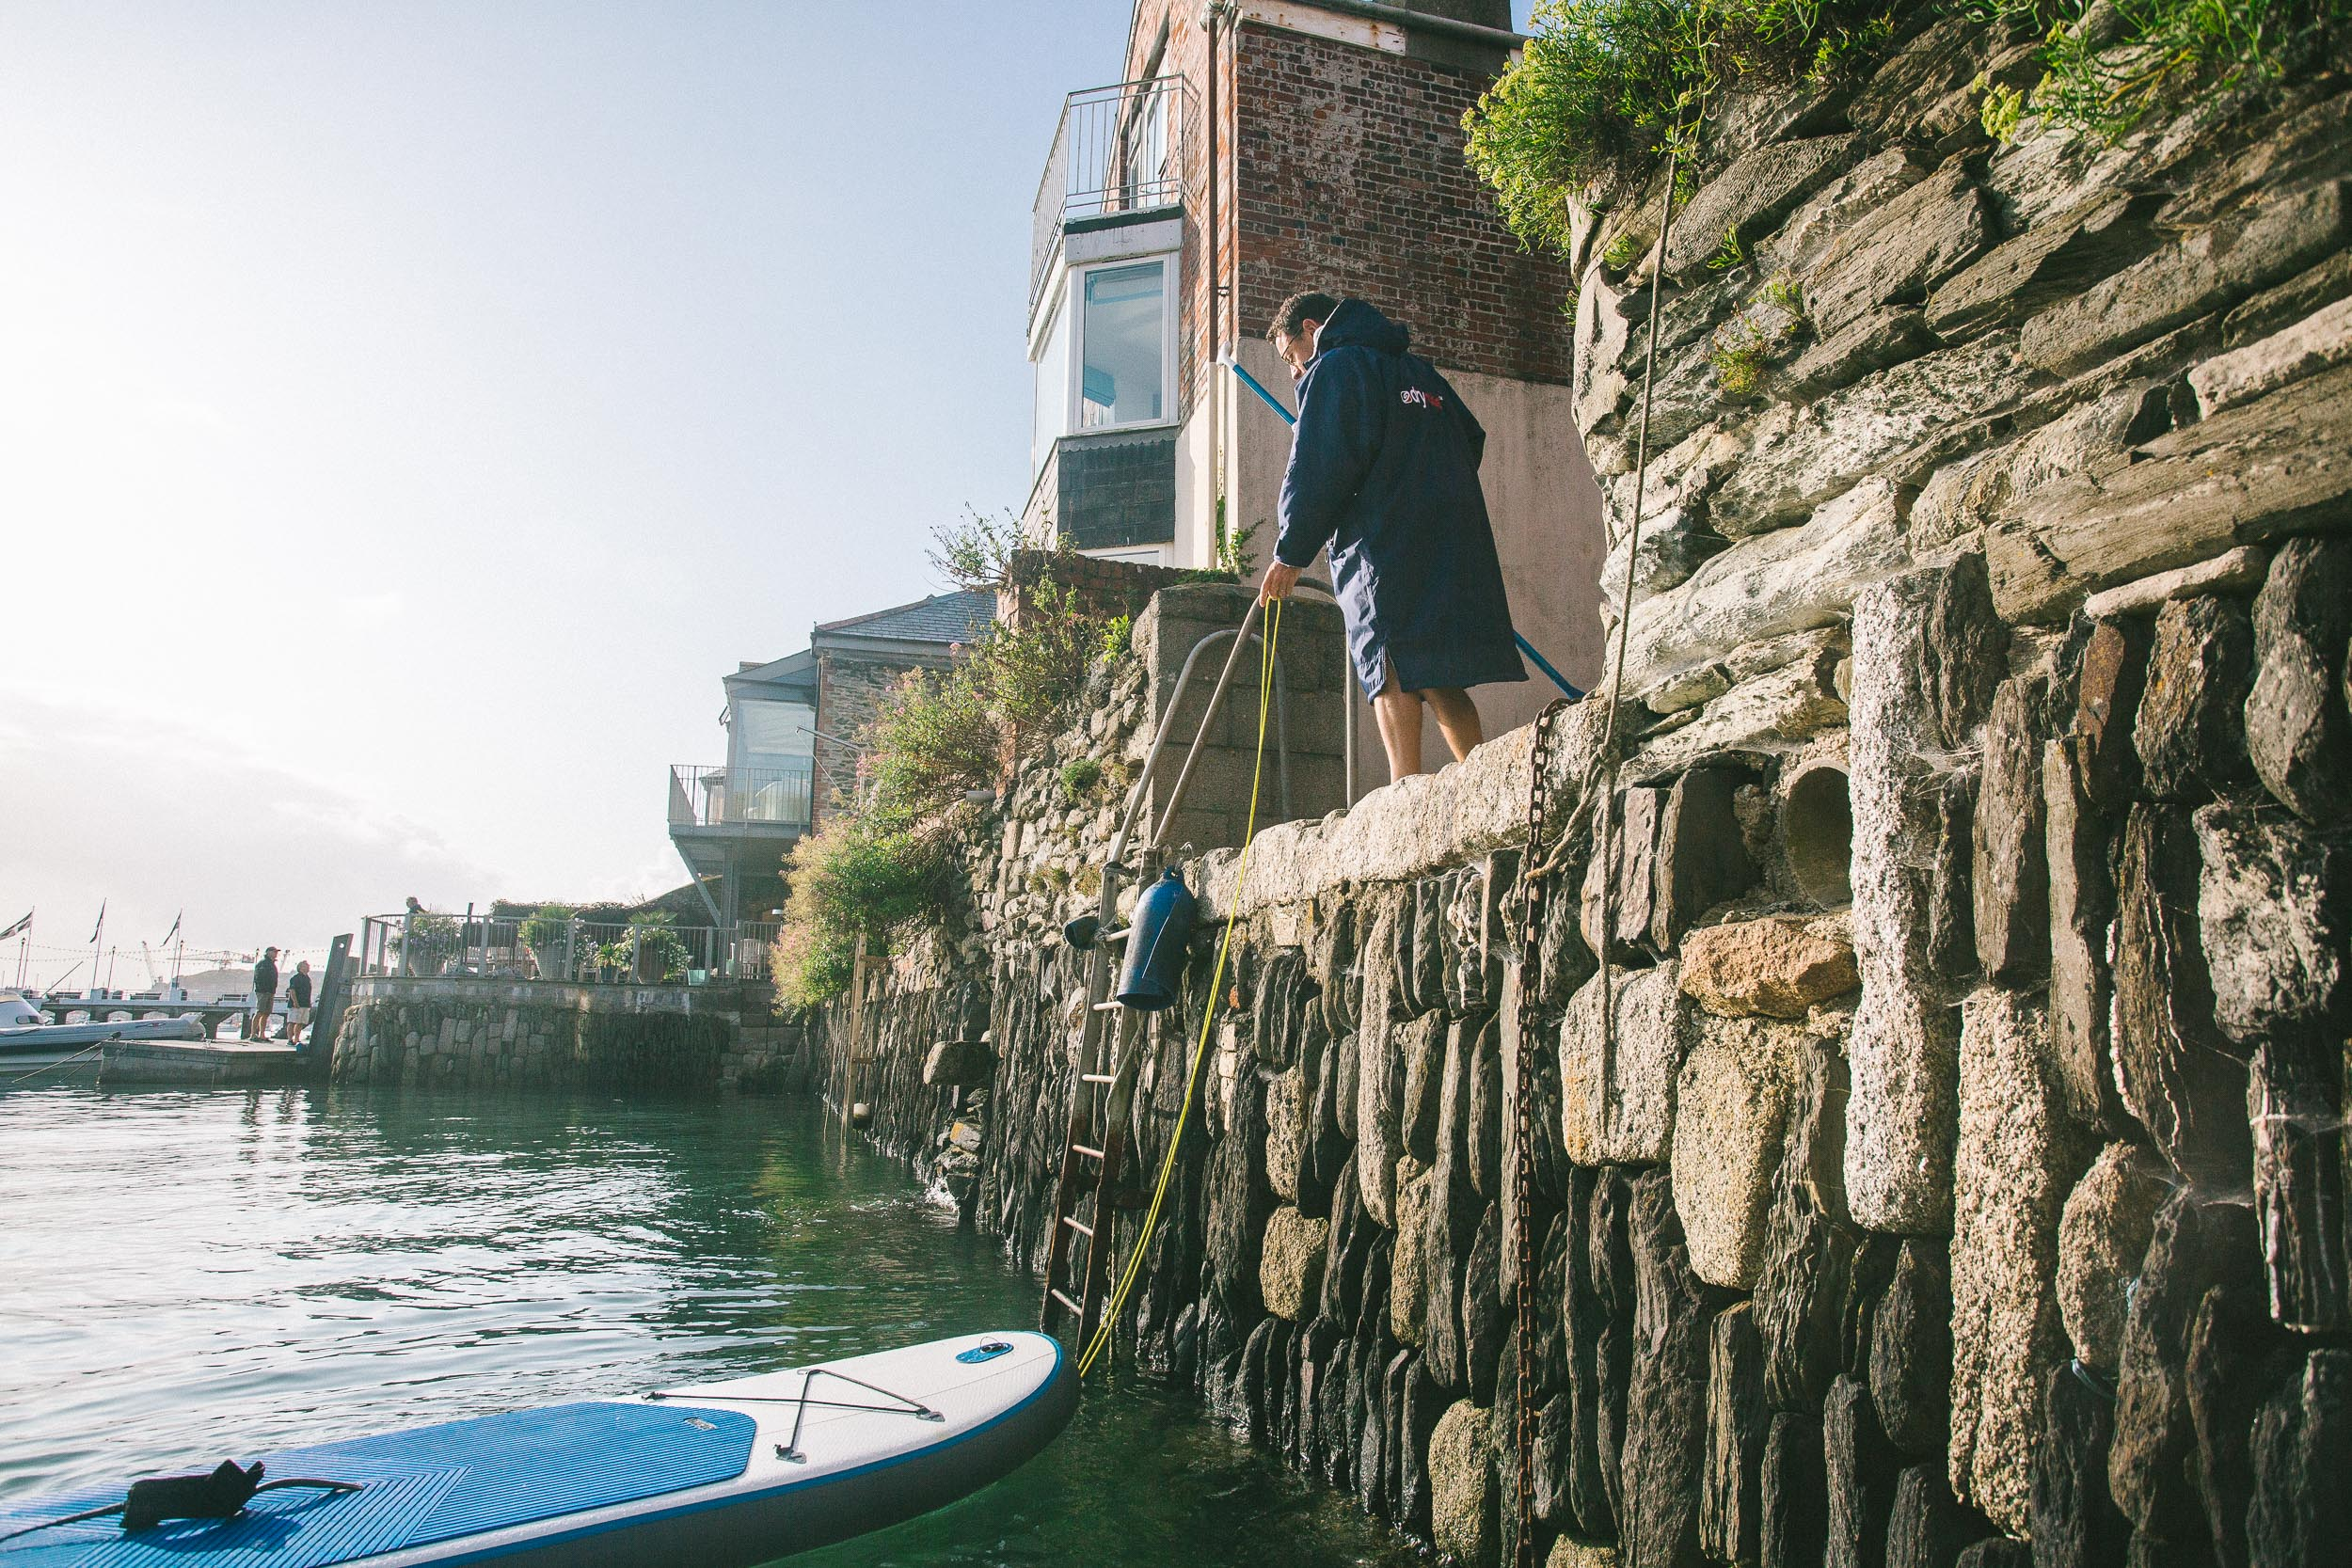 Stand up paddleboarding in Falmouth